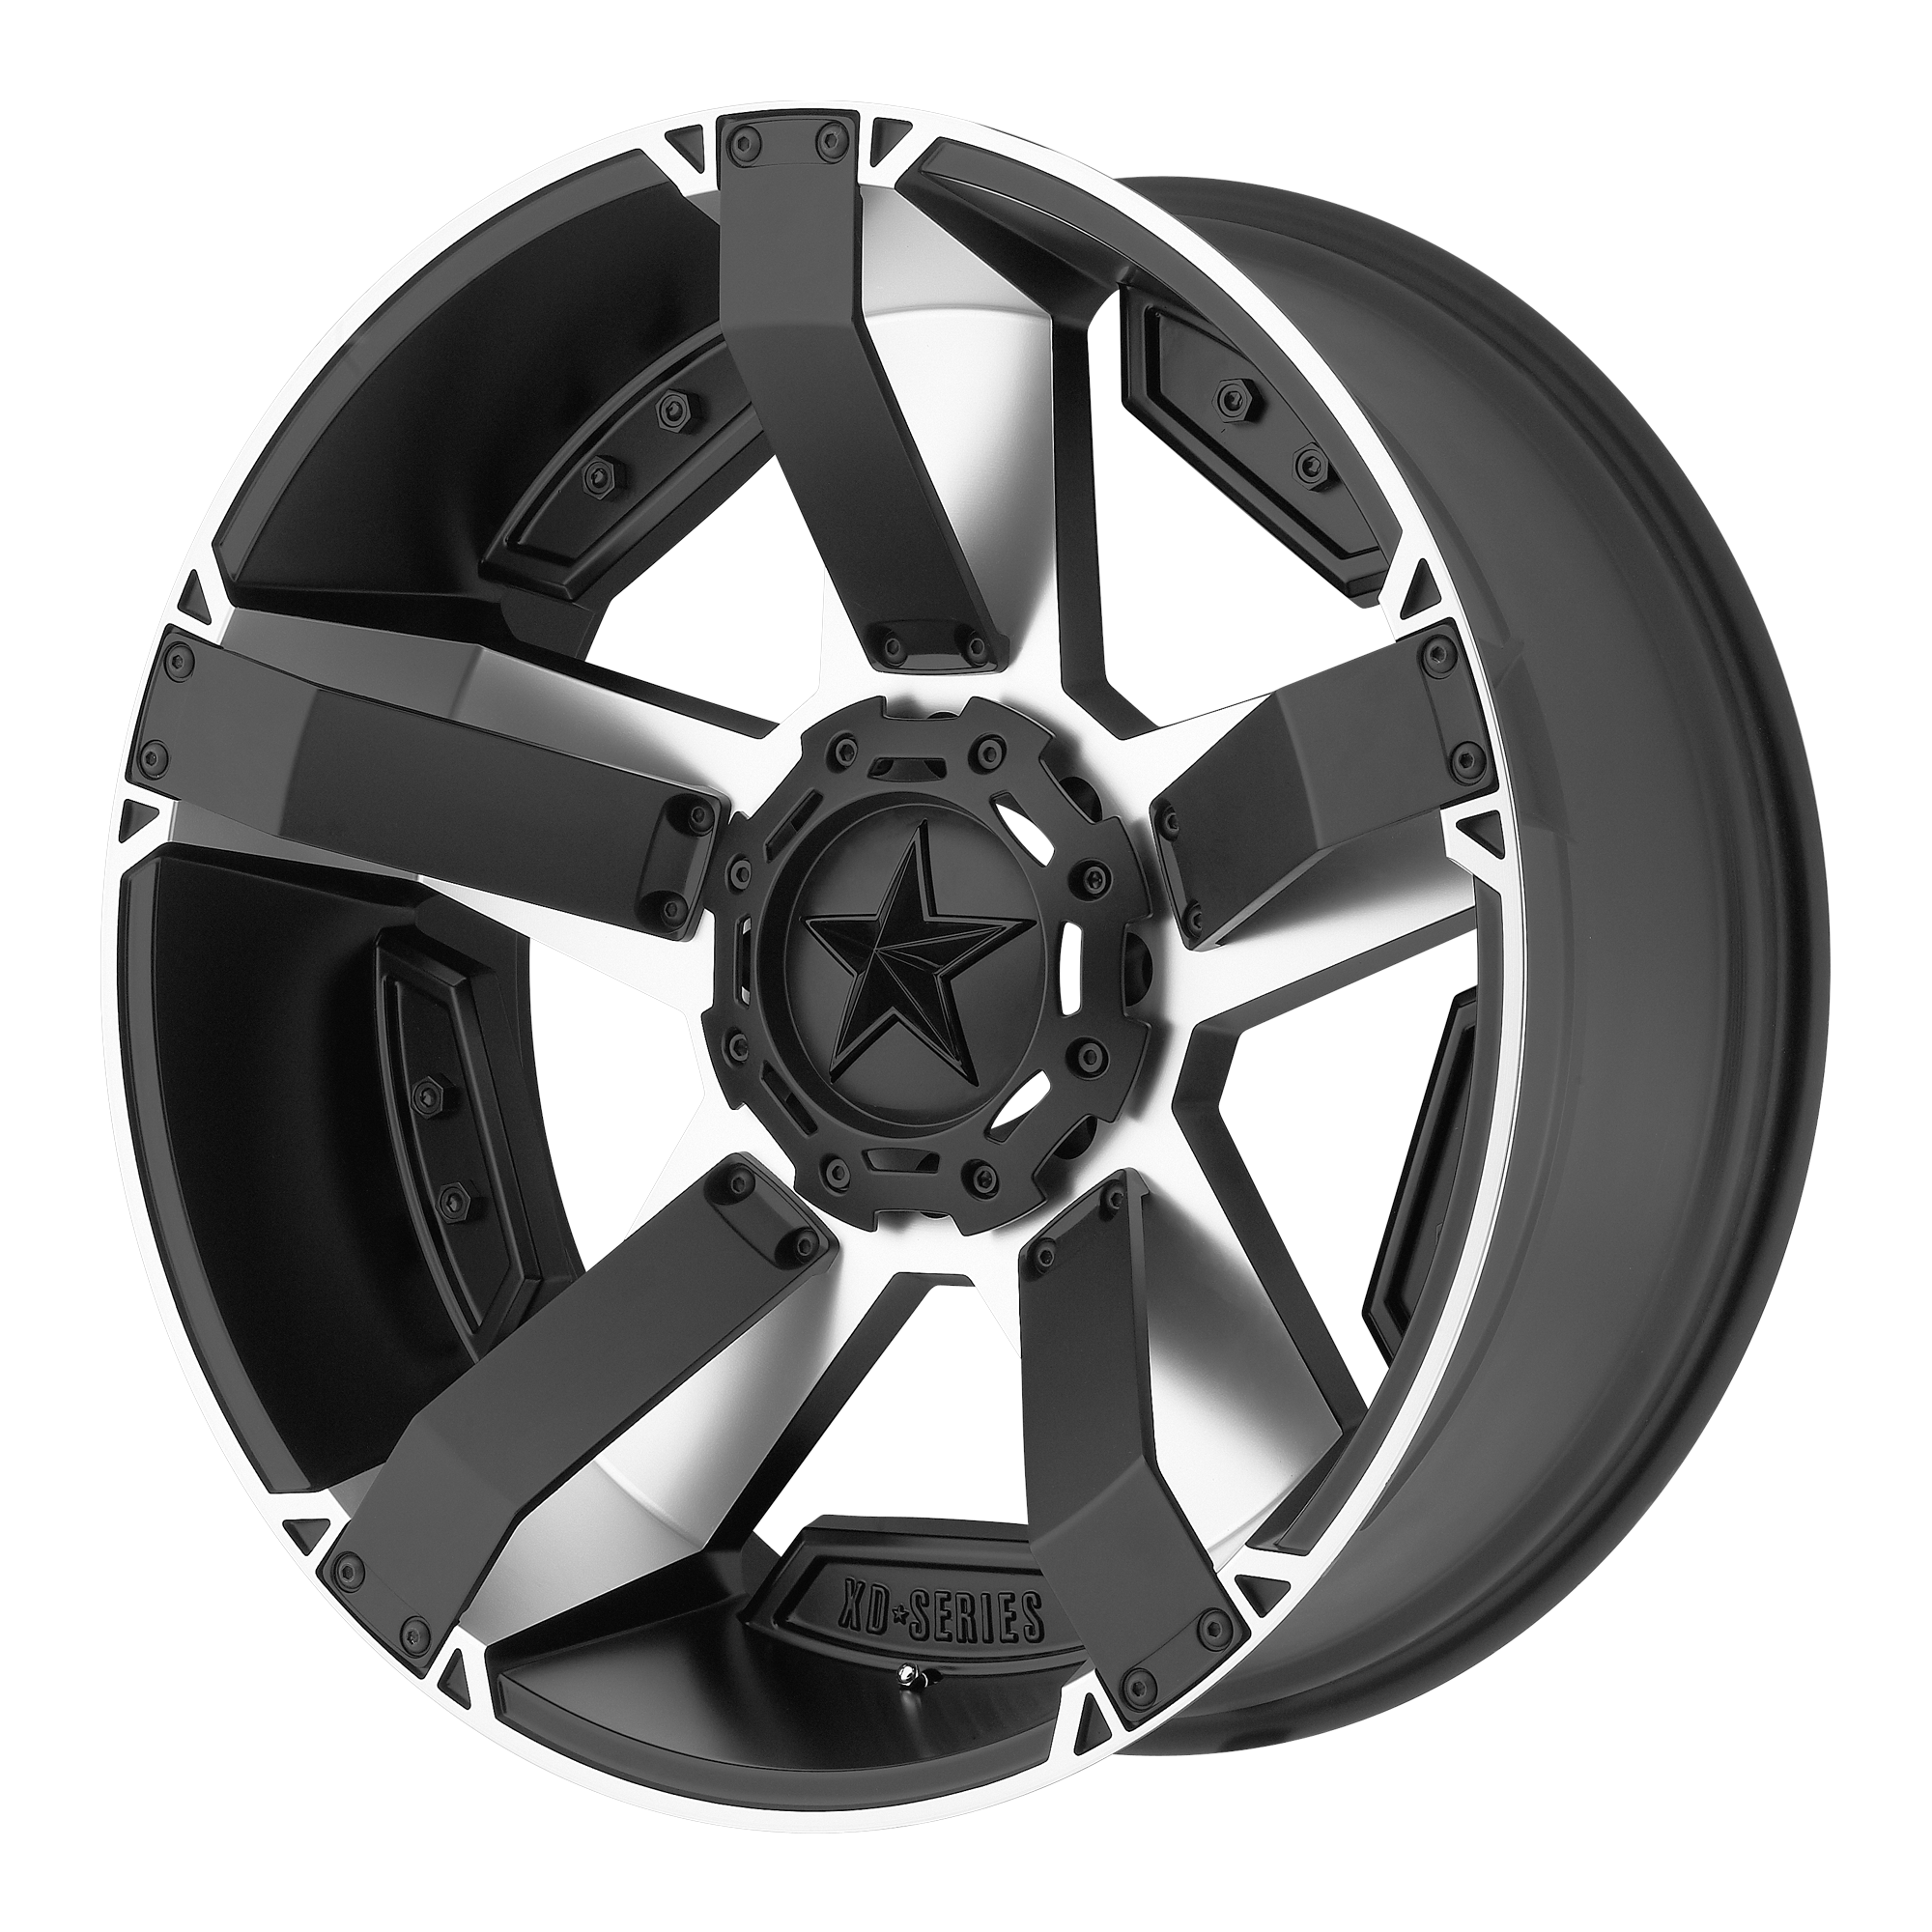 XD Series Rockstar II Wheels